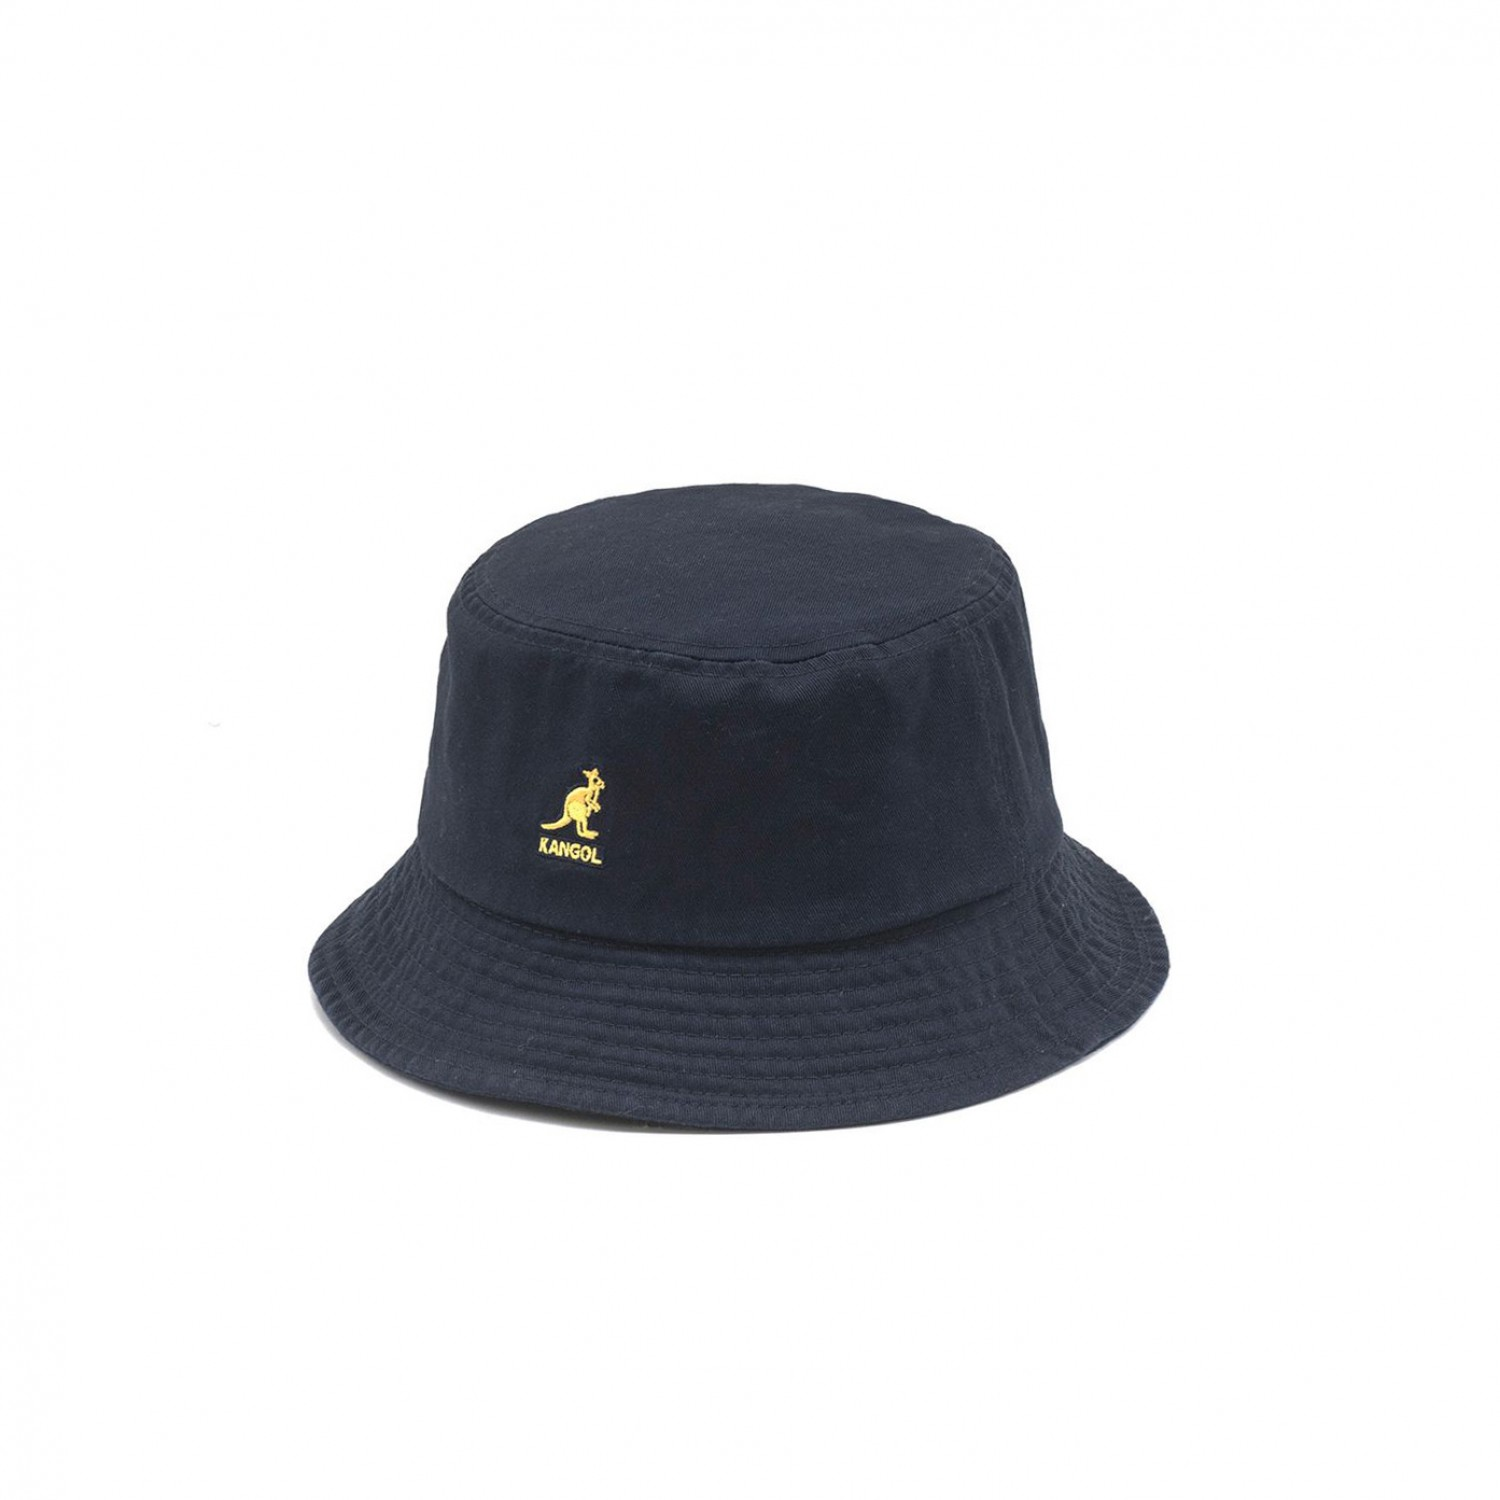 Панама Kangol - Washed Bucket Navy